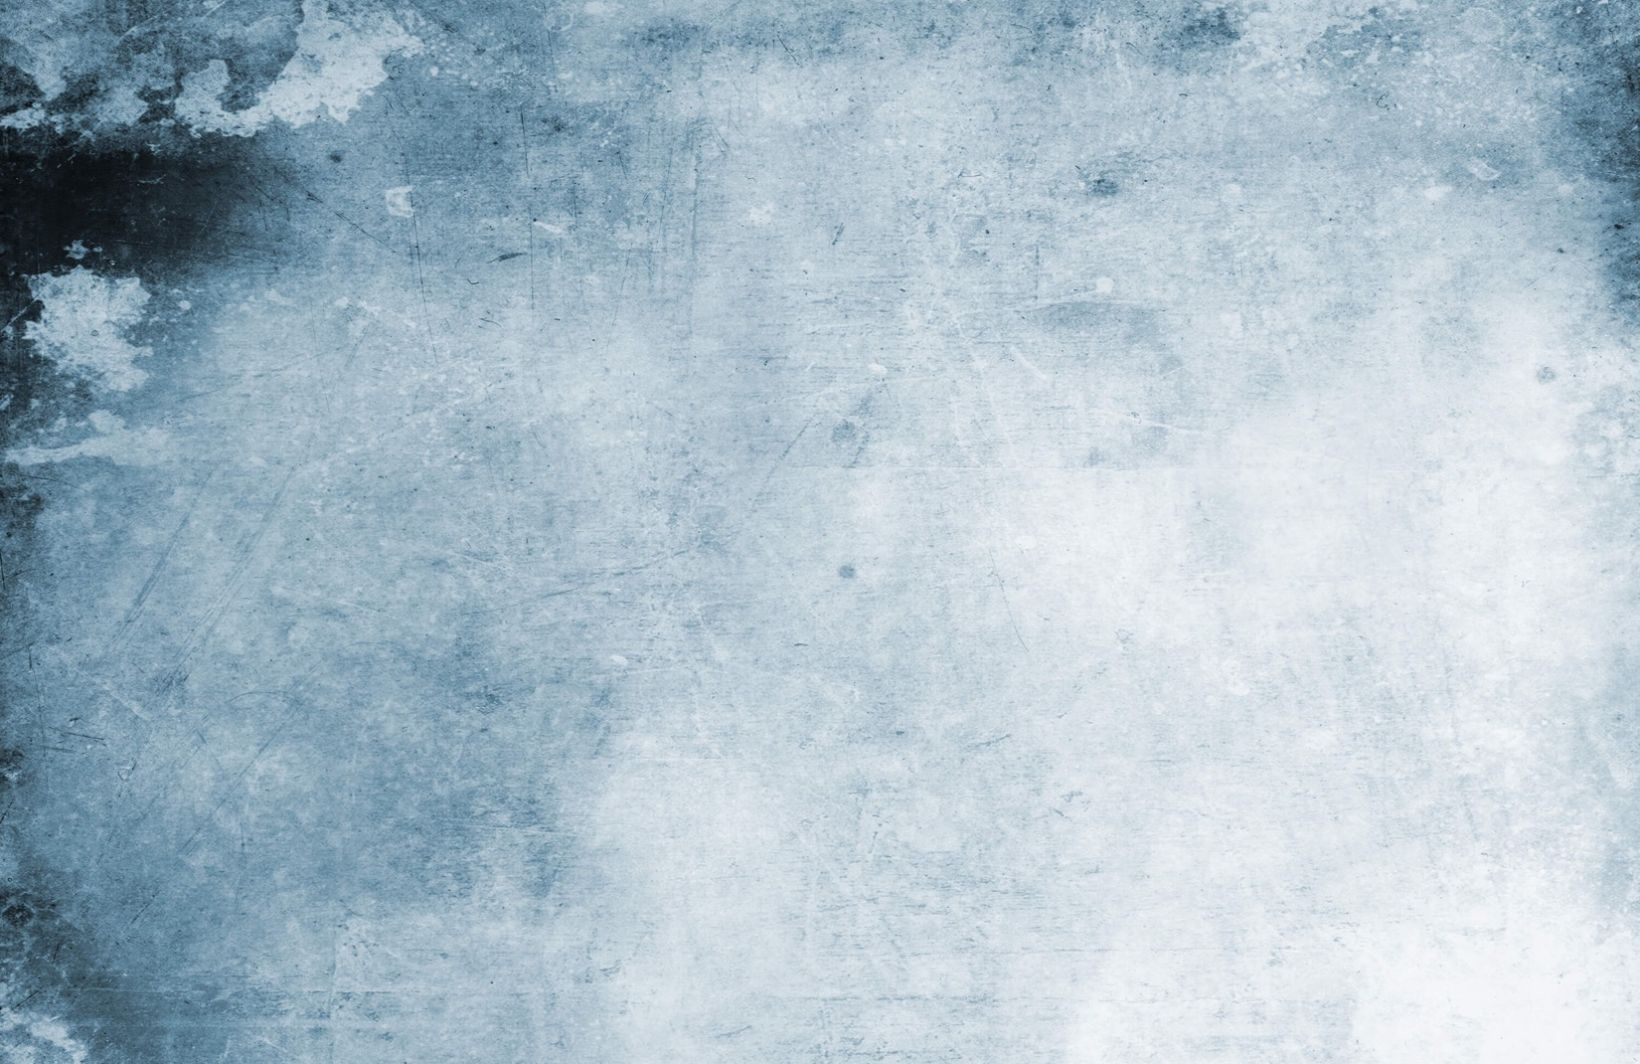 Light Blue Grunge Watercolour Wallpaper Mural Muralswallpaper